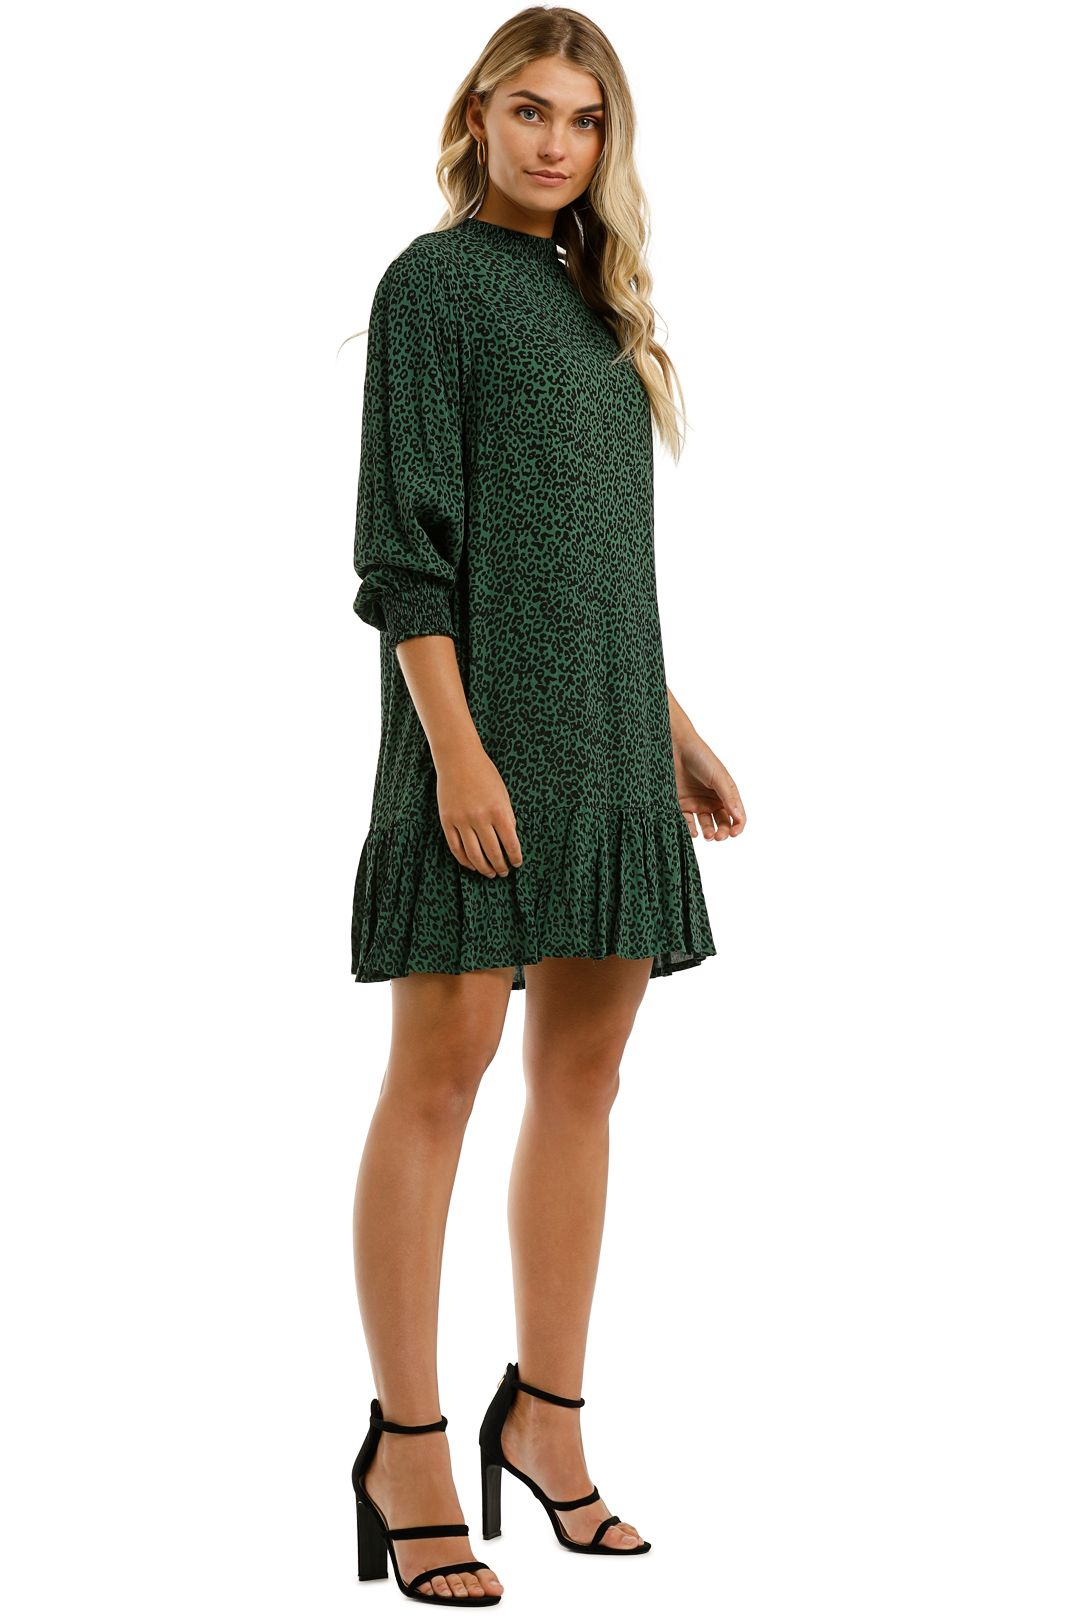 Rue-Stiic-Lily-Mini-Dress-Nala-Mountain-Green-Side